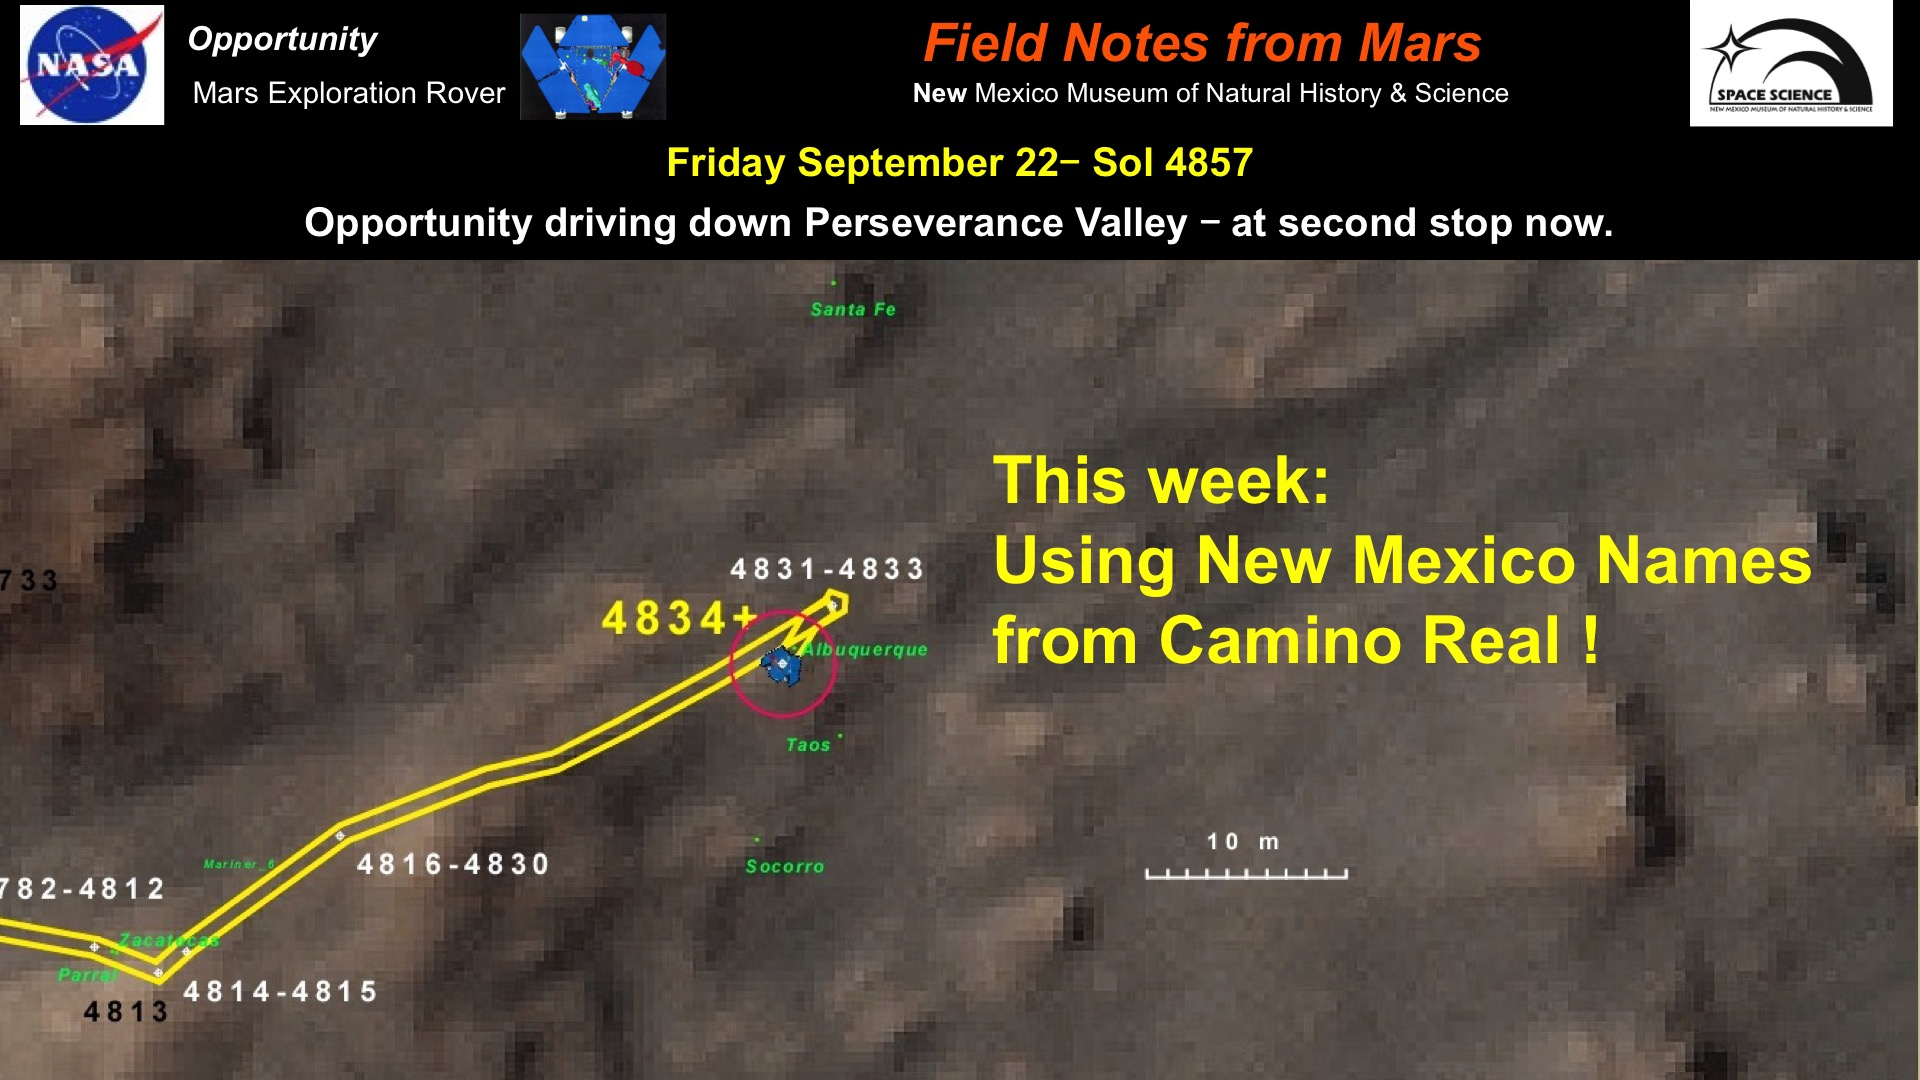 New Mexico how long does it take to travel to mars